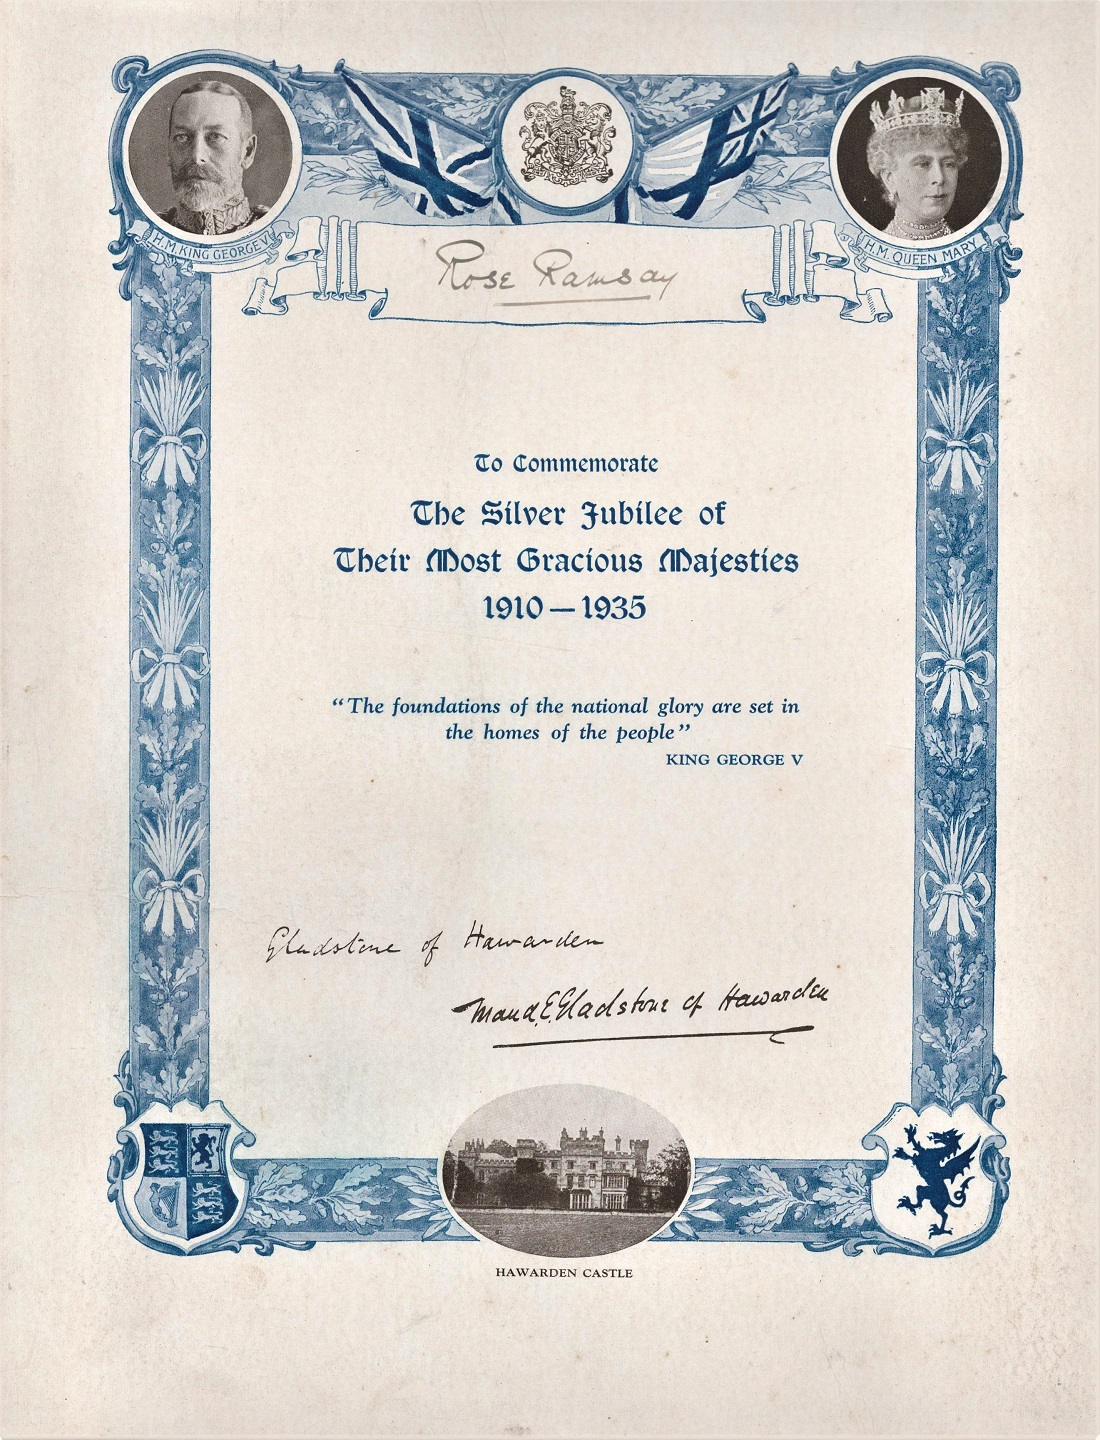 Certificate to Commemorate The Silver Jubilee of King George V & Queen Mary 1910 1935 printed - Image 2 of 2